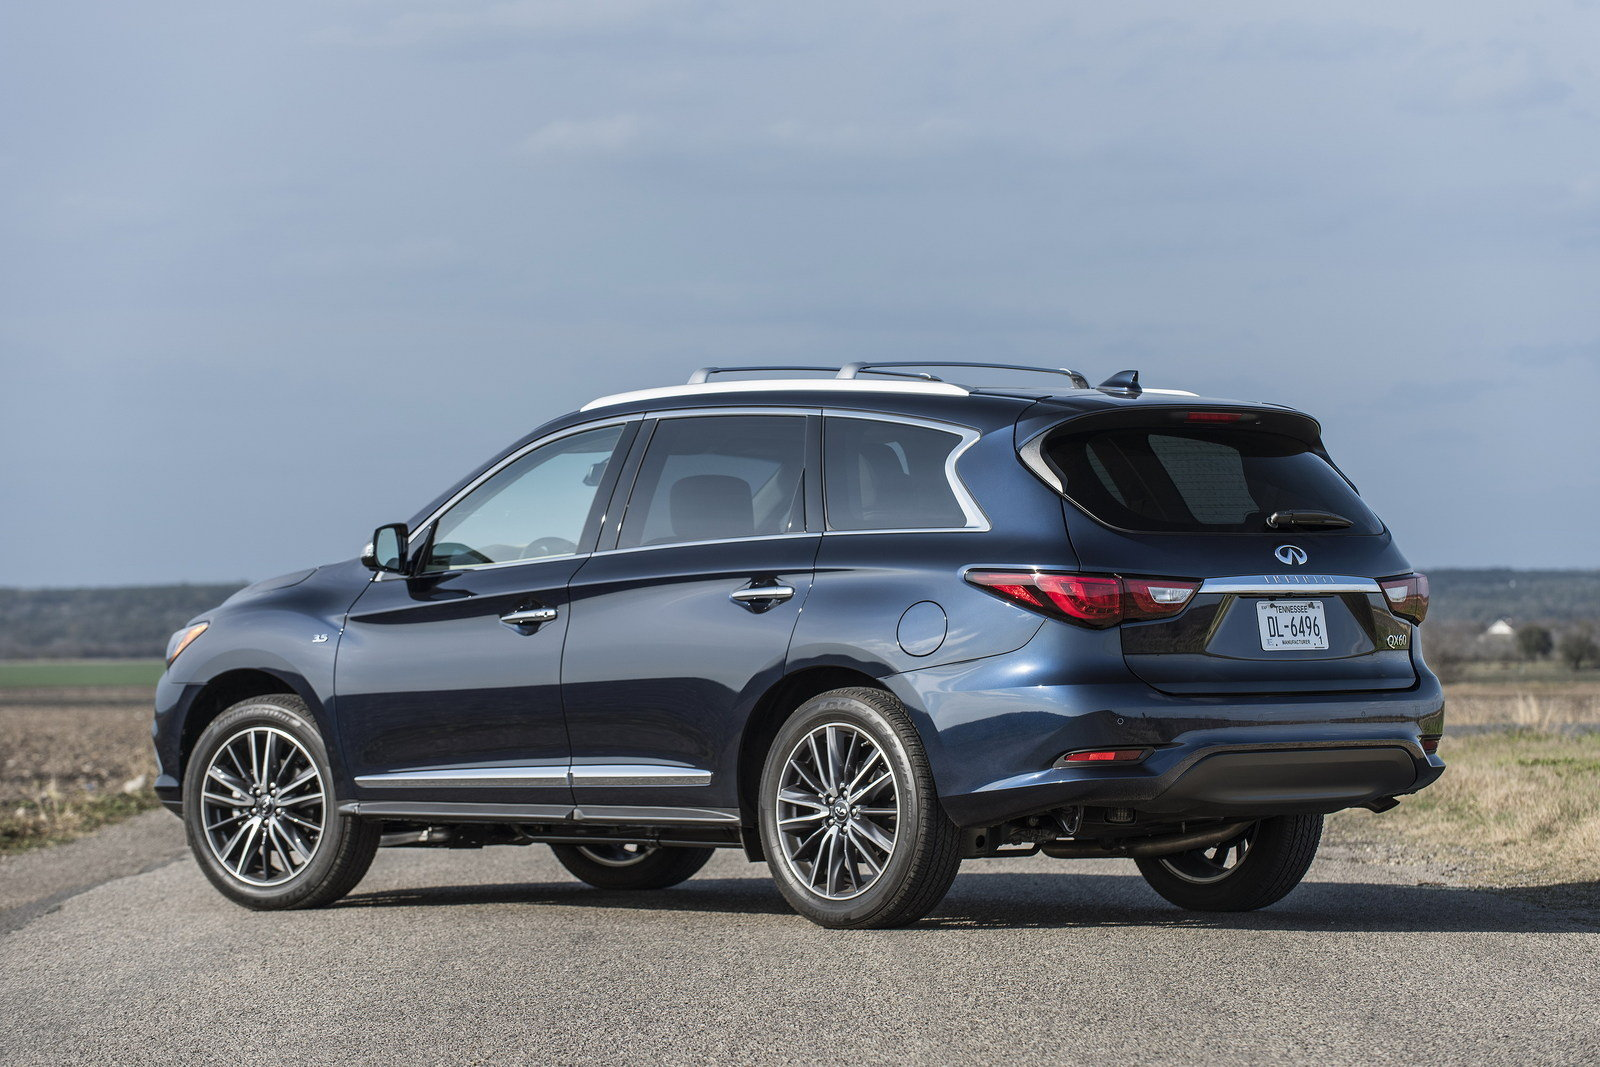 2016 infiniti qx60 picture 666976 car review top speed. Black Bedroom Furniture Sets. Home Design Ideas